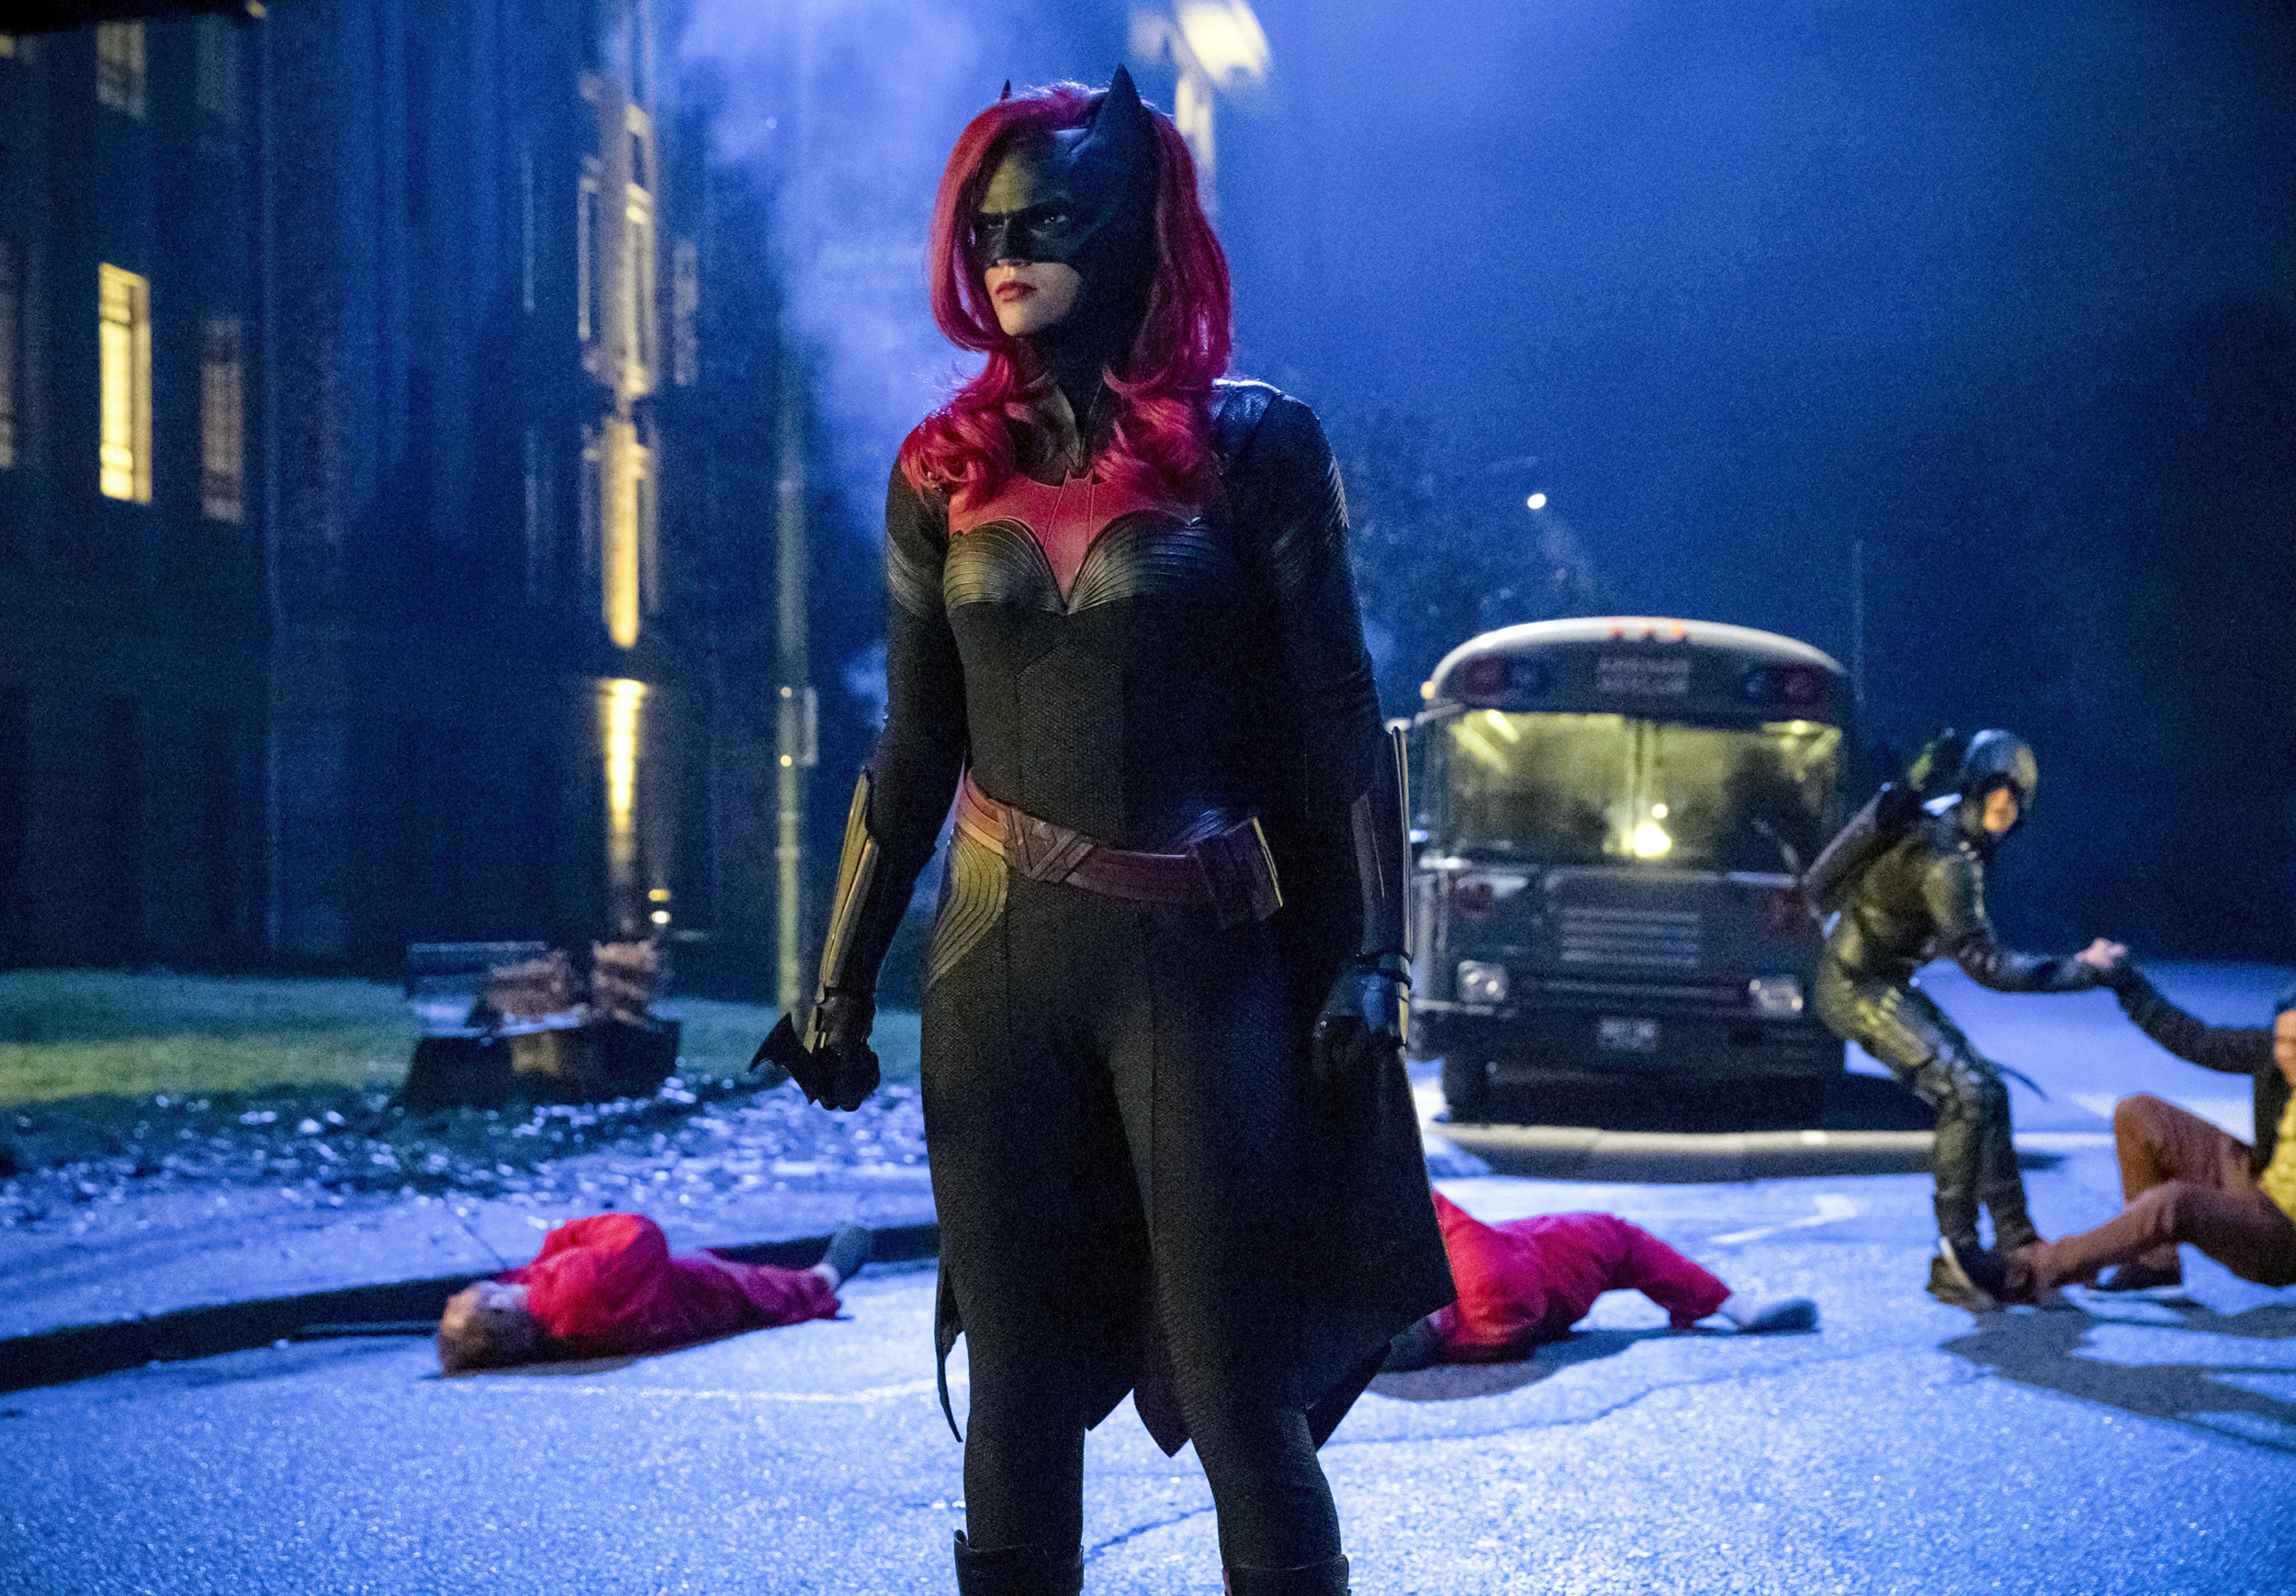 When does the next episode air for Batwoman?